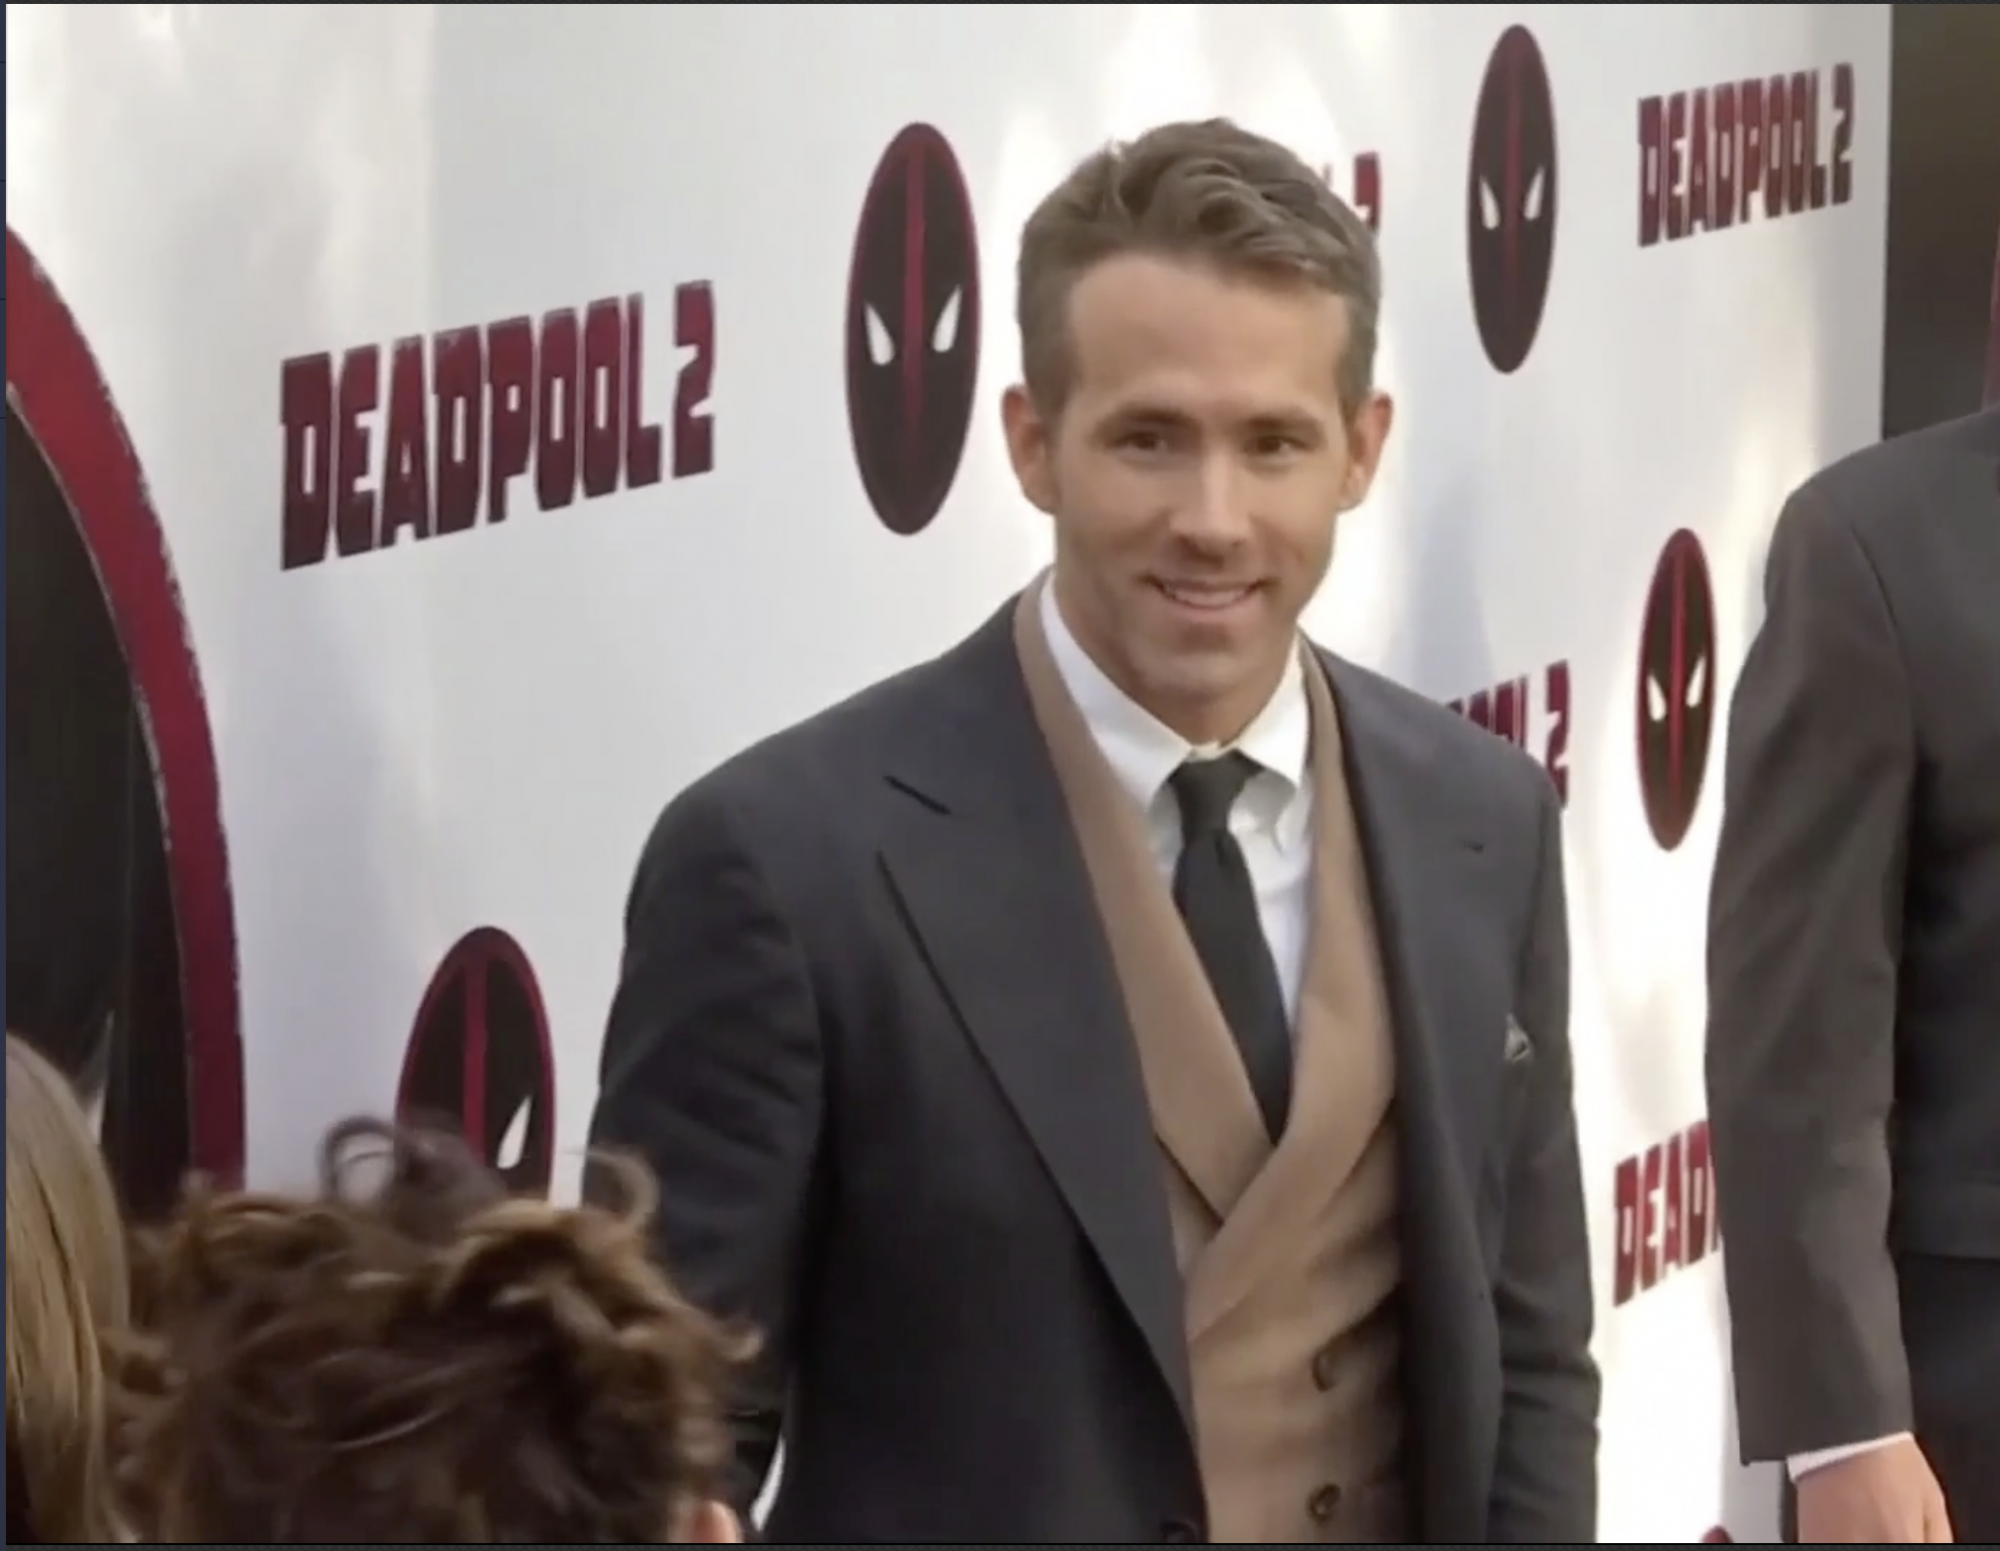 Hollywood star Ryan Reynolds: the unlikely hero of Wrexham FC? - channel 4